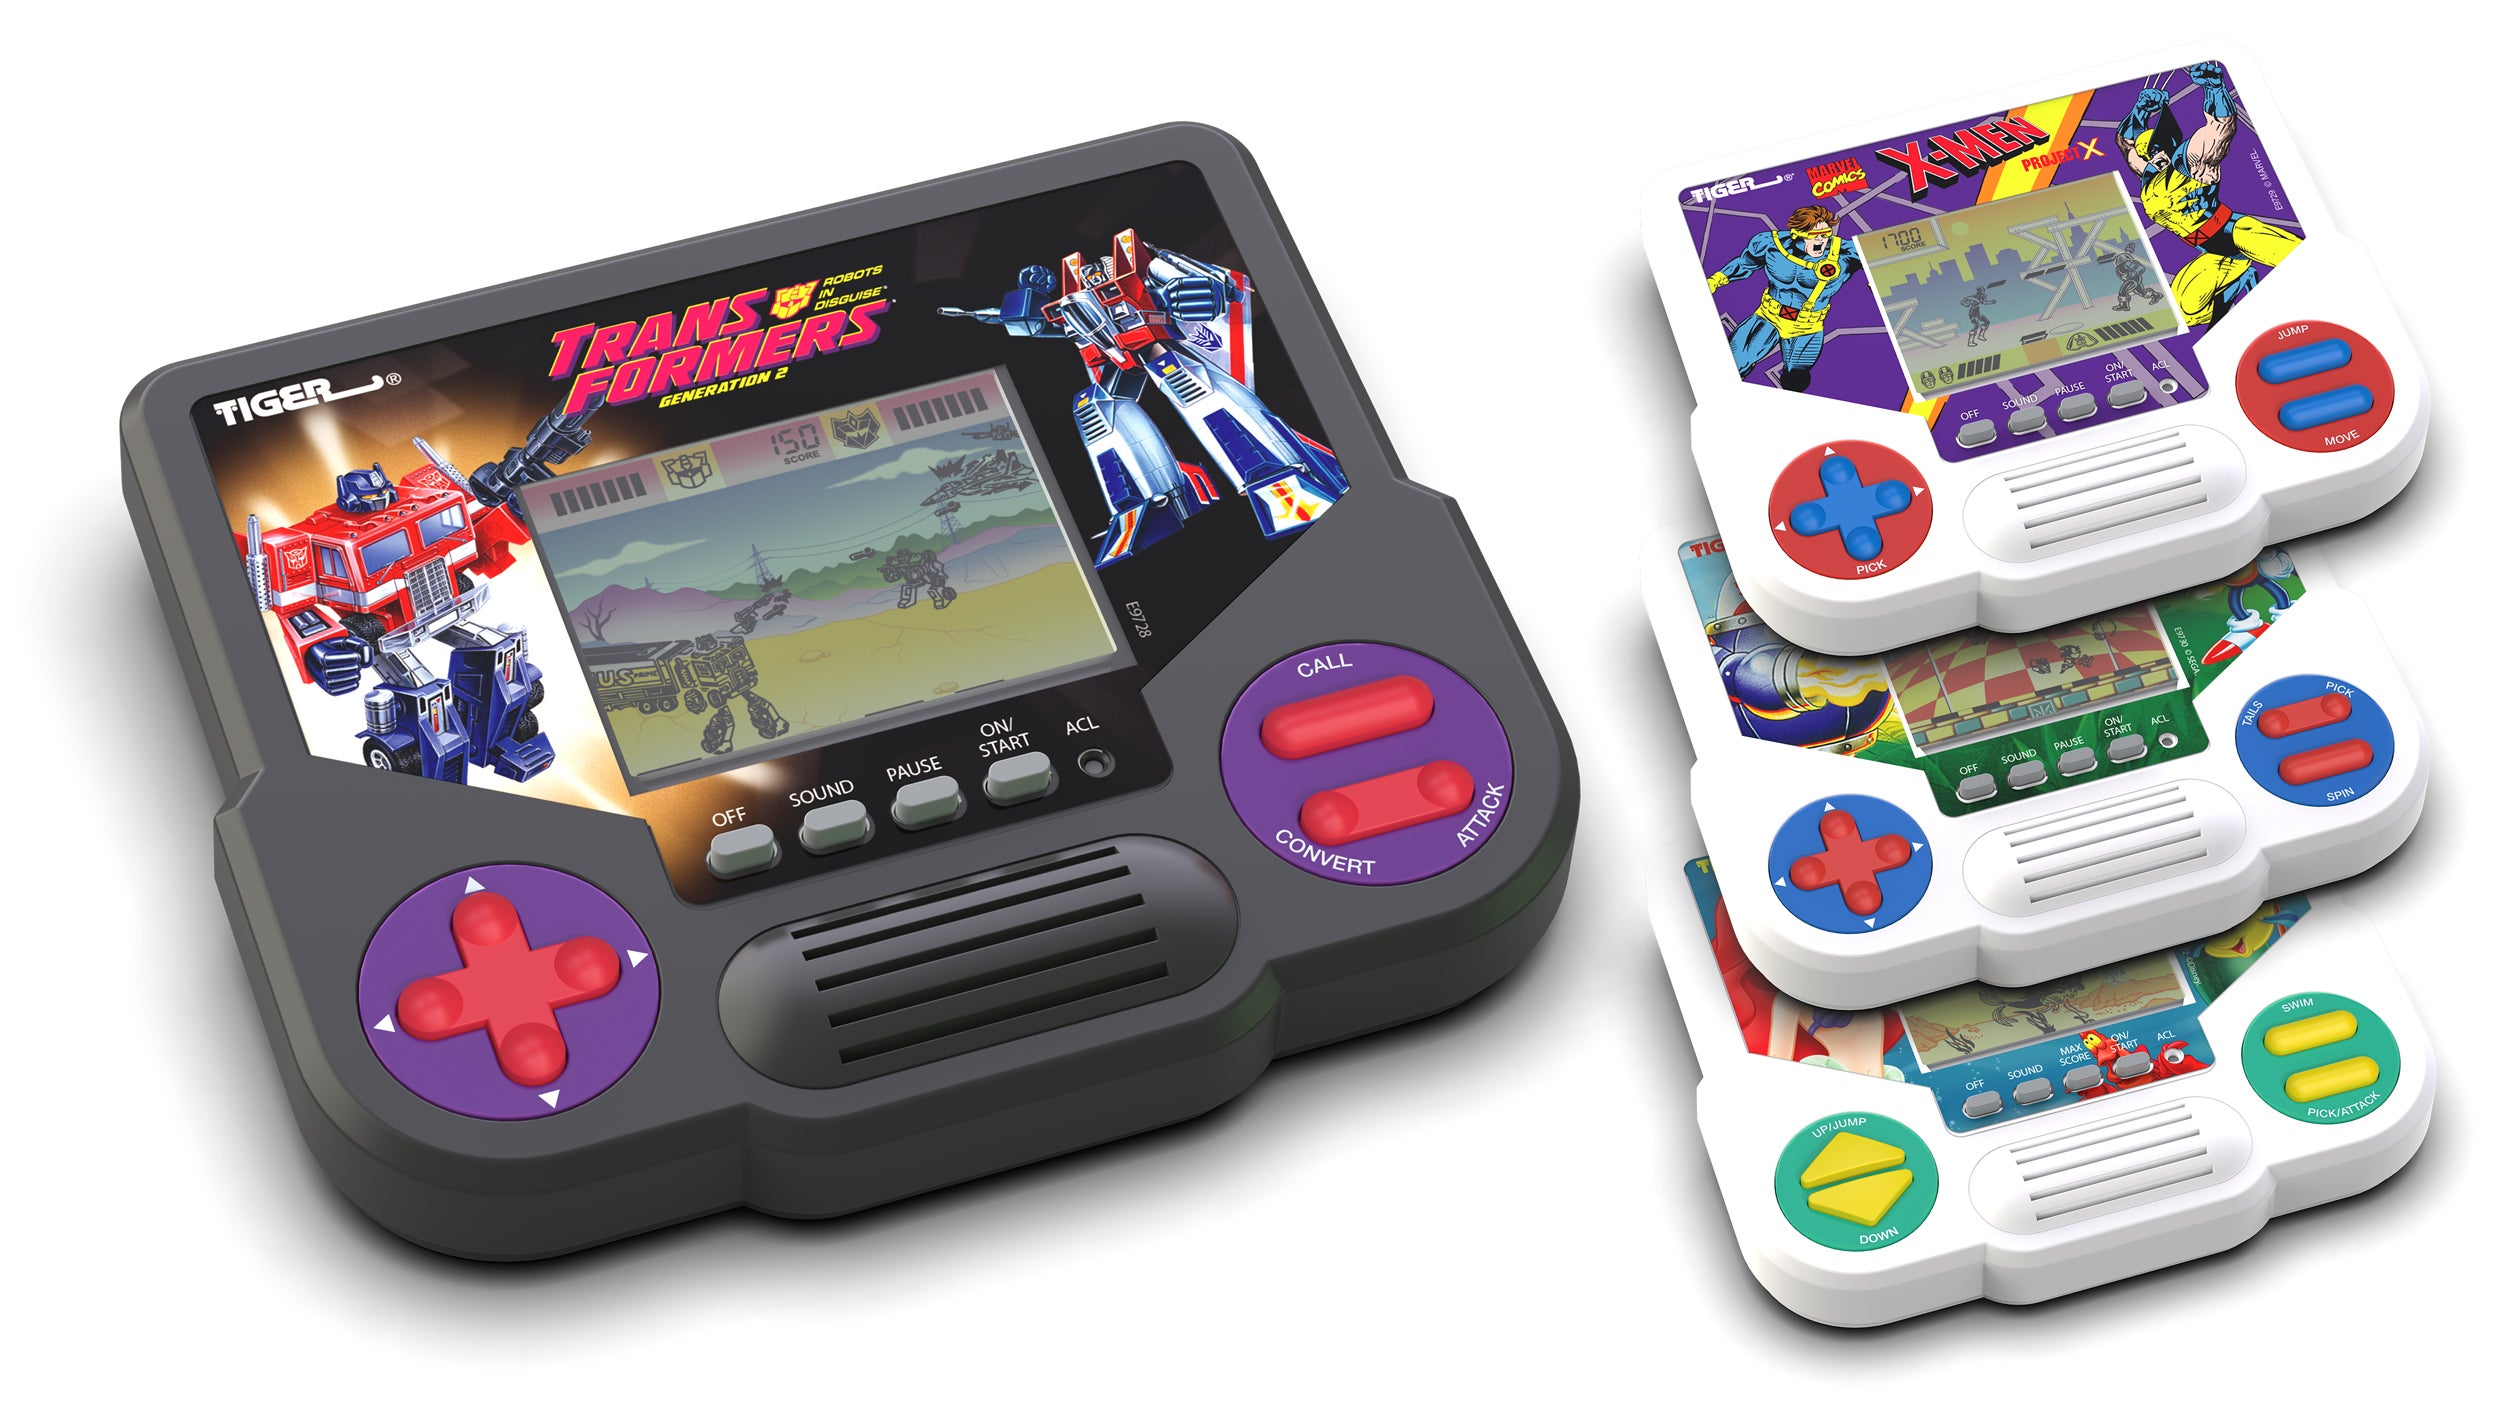 Hasbro Is Bringing Back Tiger Electronics' Handheld LCD Games